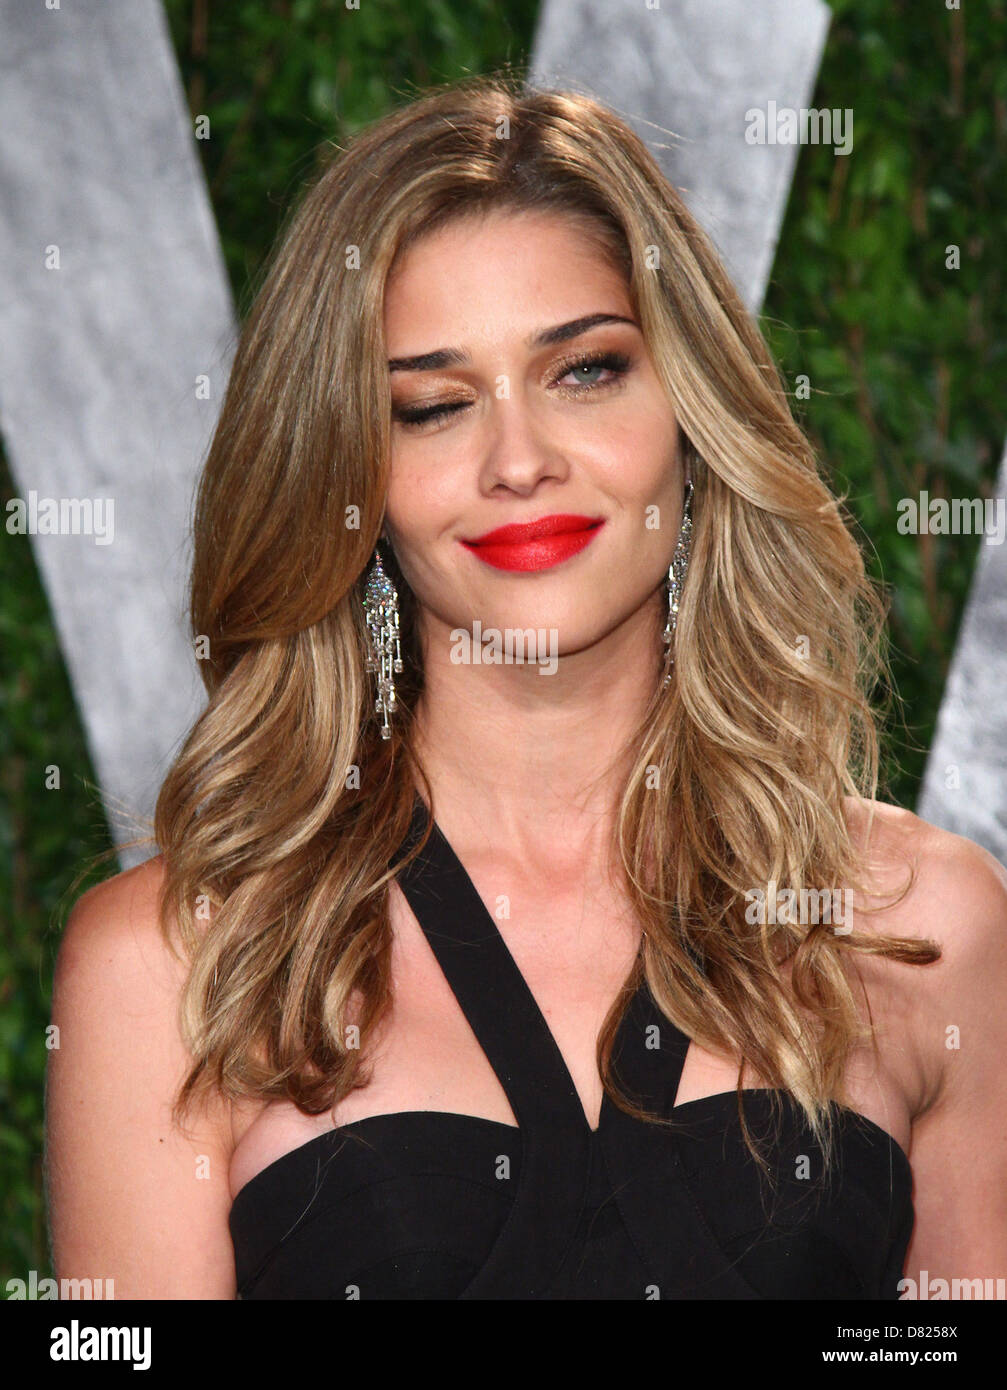 ana beatriz barros son